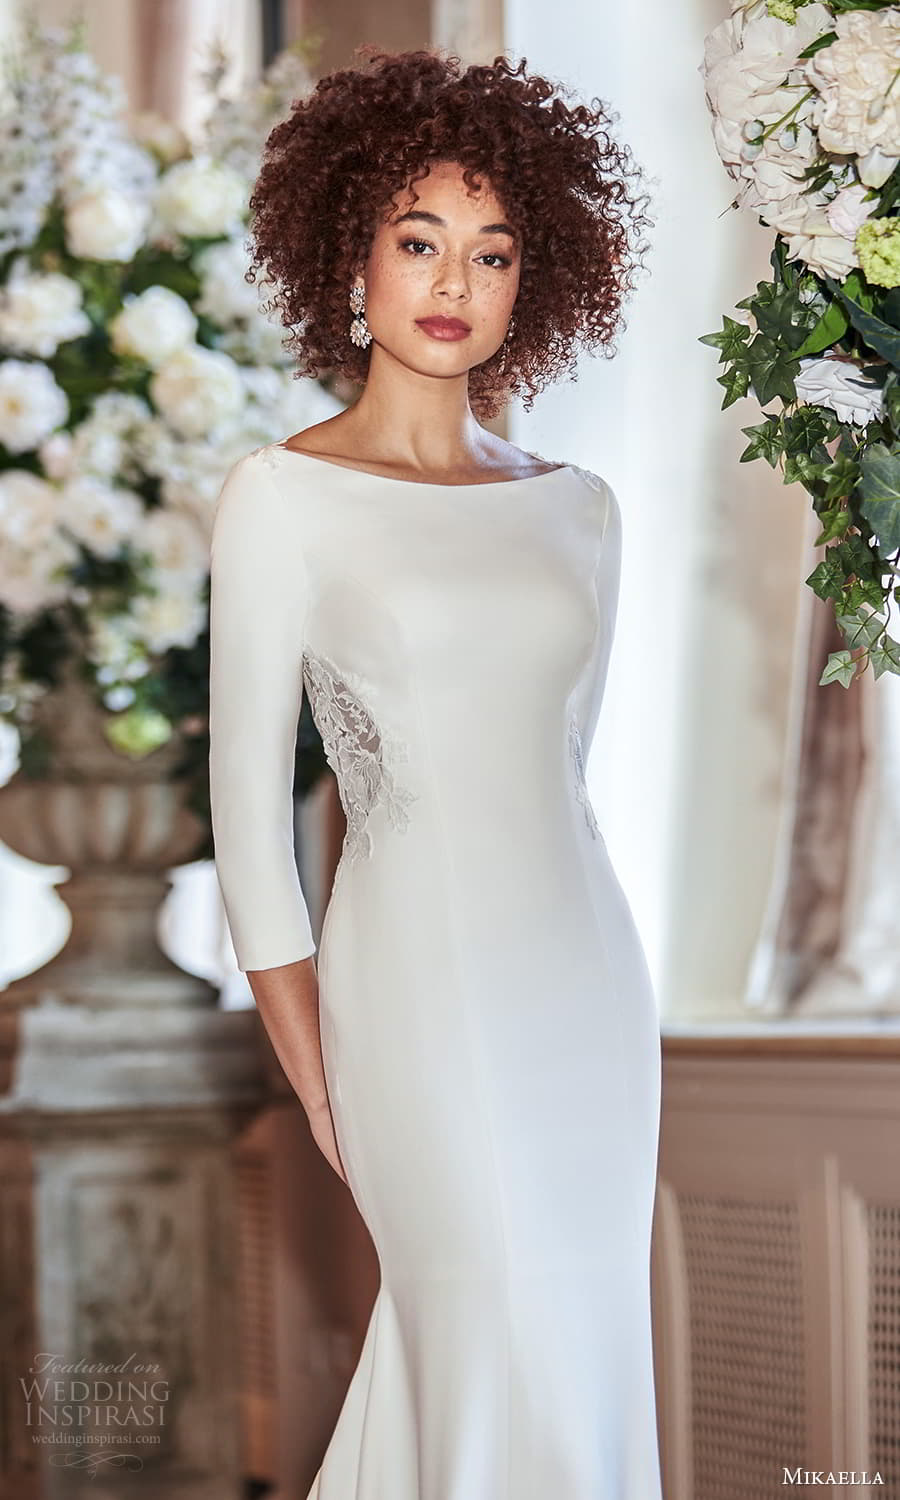 mikaella fall 2021 bridal 3 quarter sleeve bateau neckline clean minimalist sheath wedding dress chapel train (1) zv